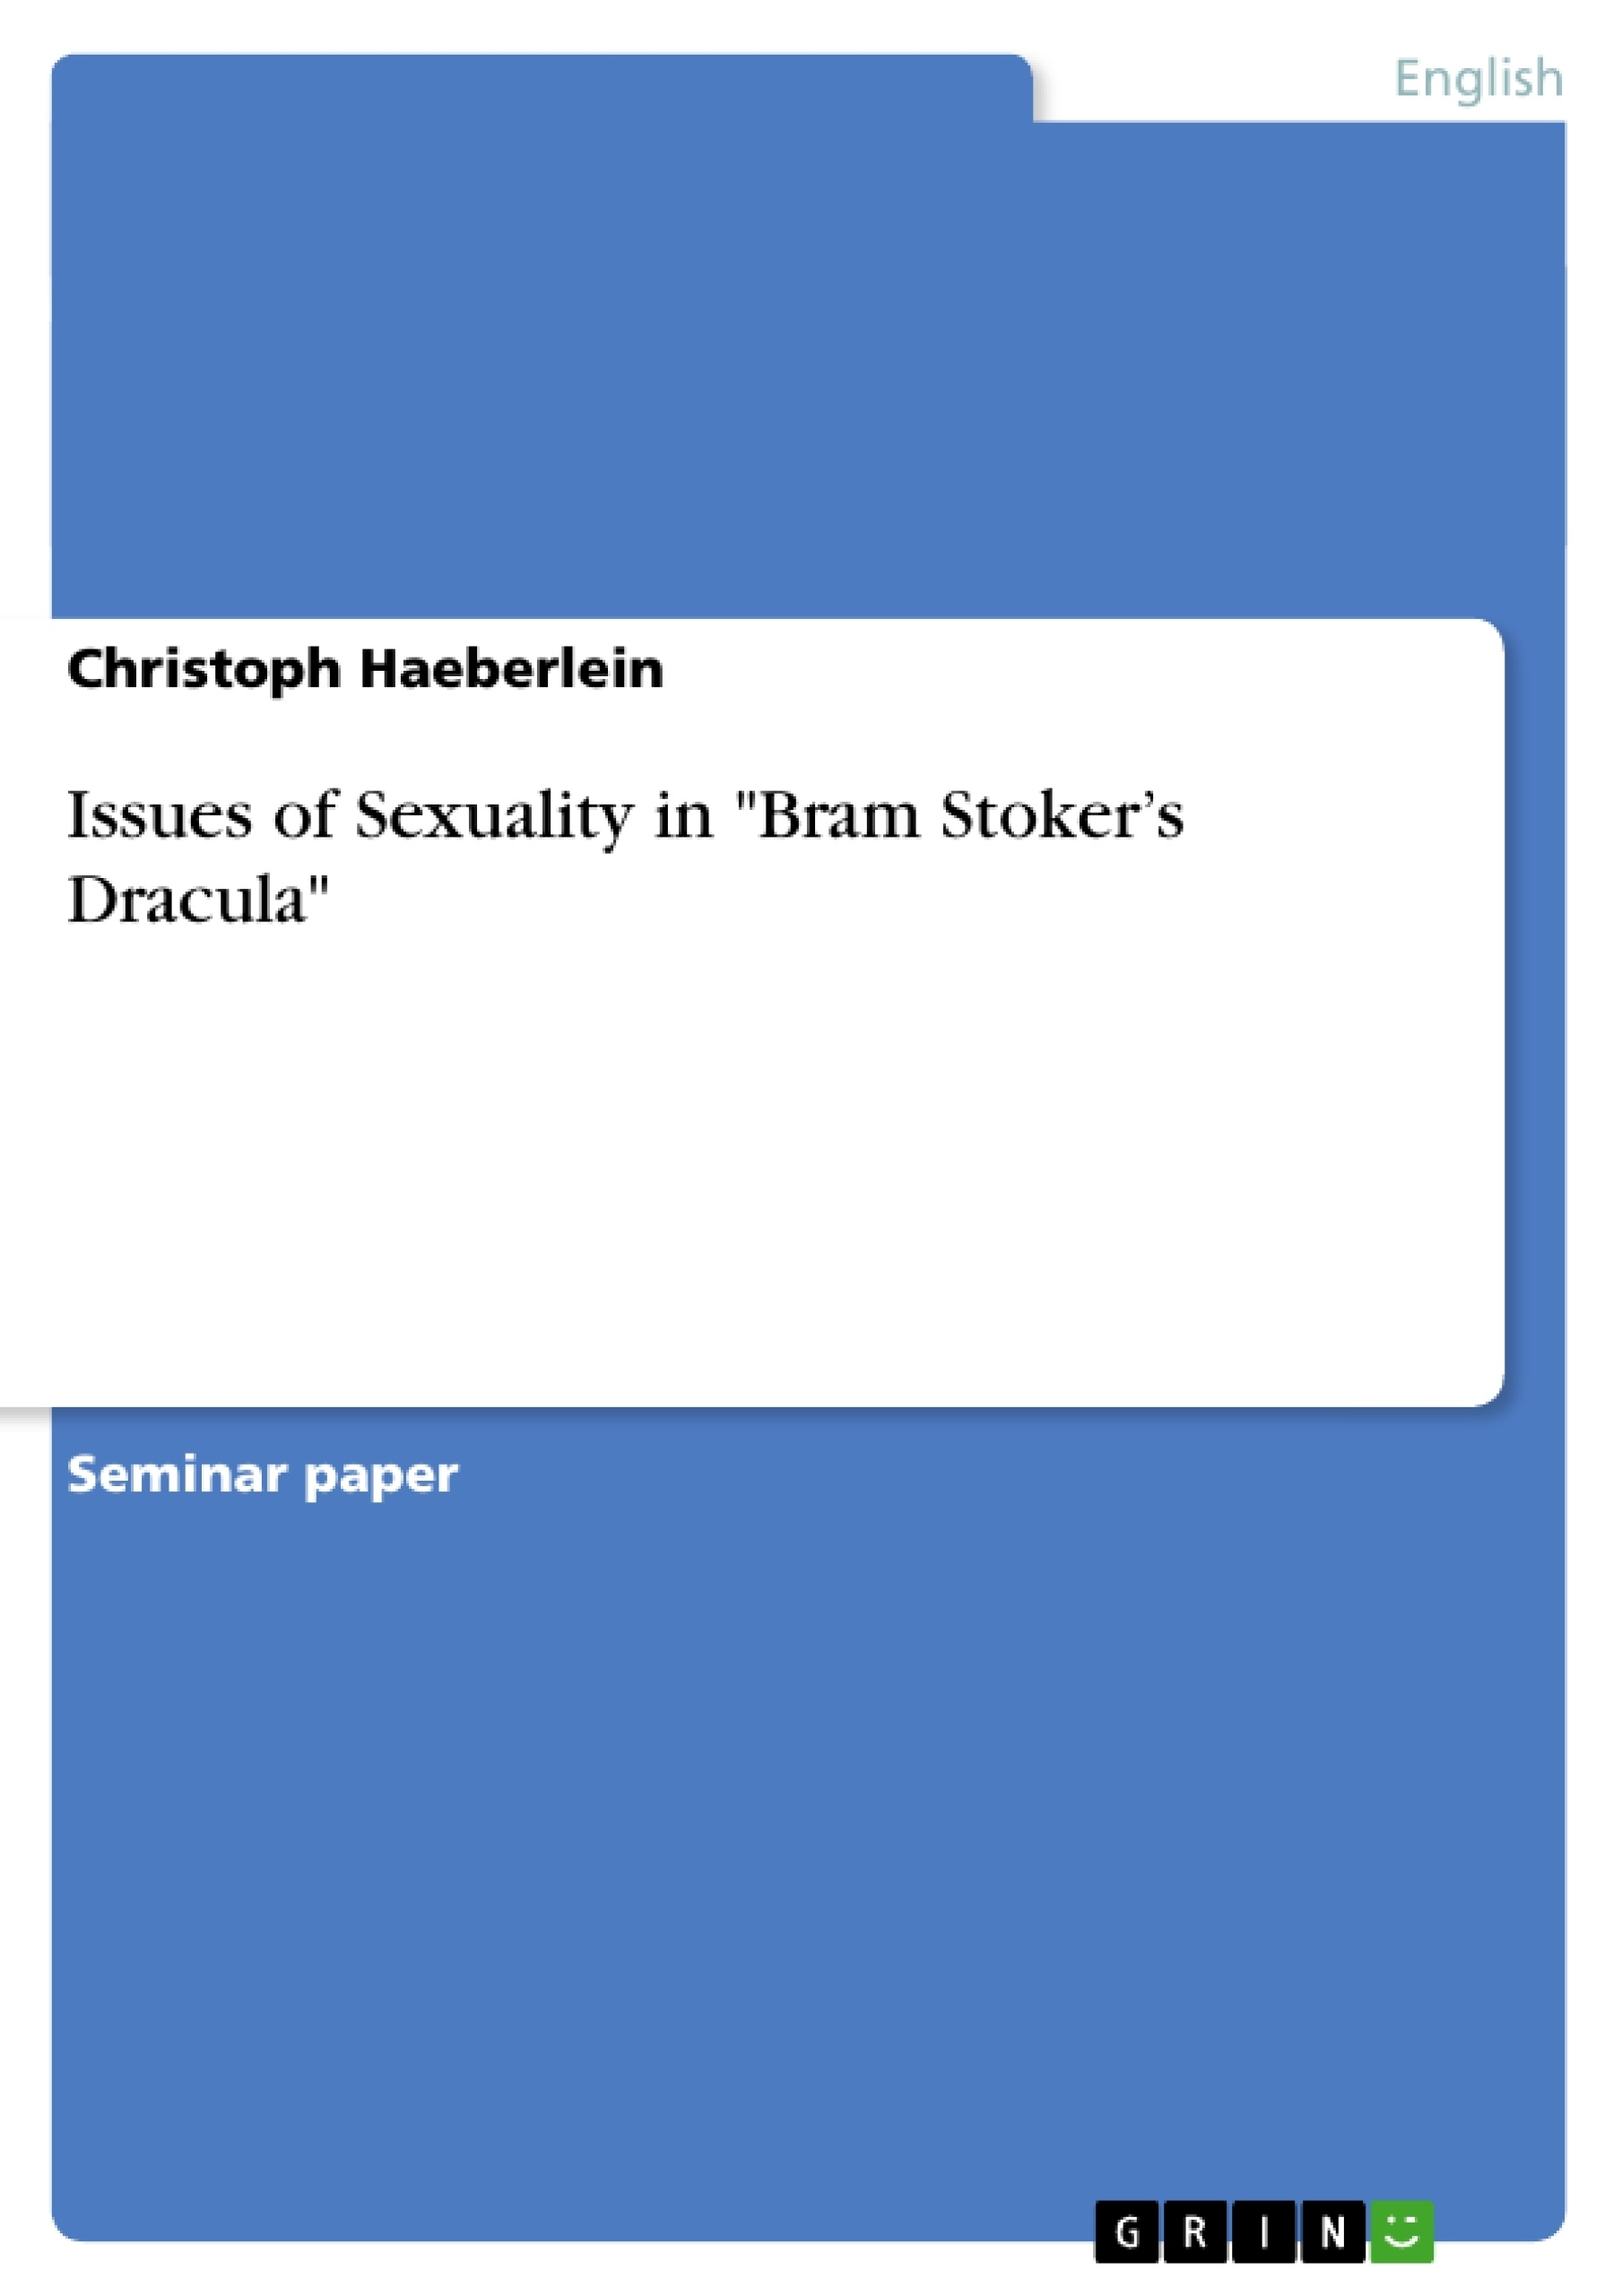 dracula sexuality thesis A thesis submitted to the faculty of the university of mississippi in partial  fulfillment of  dracula and his vampire brides represent the consequences of  sexual.